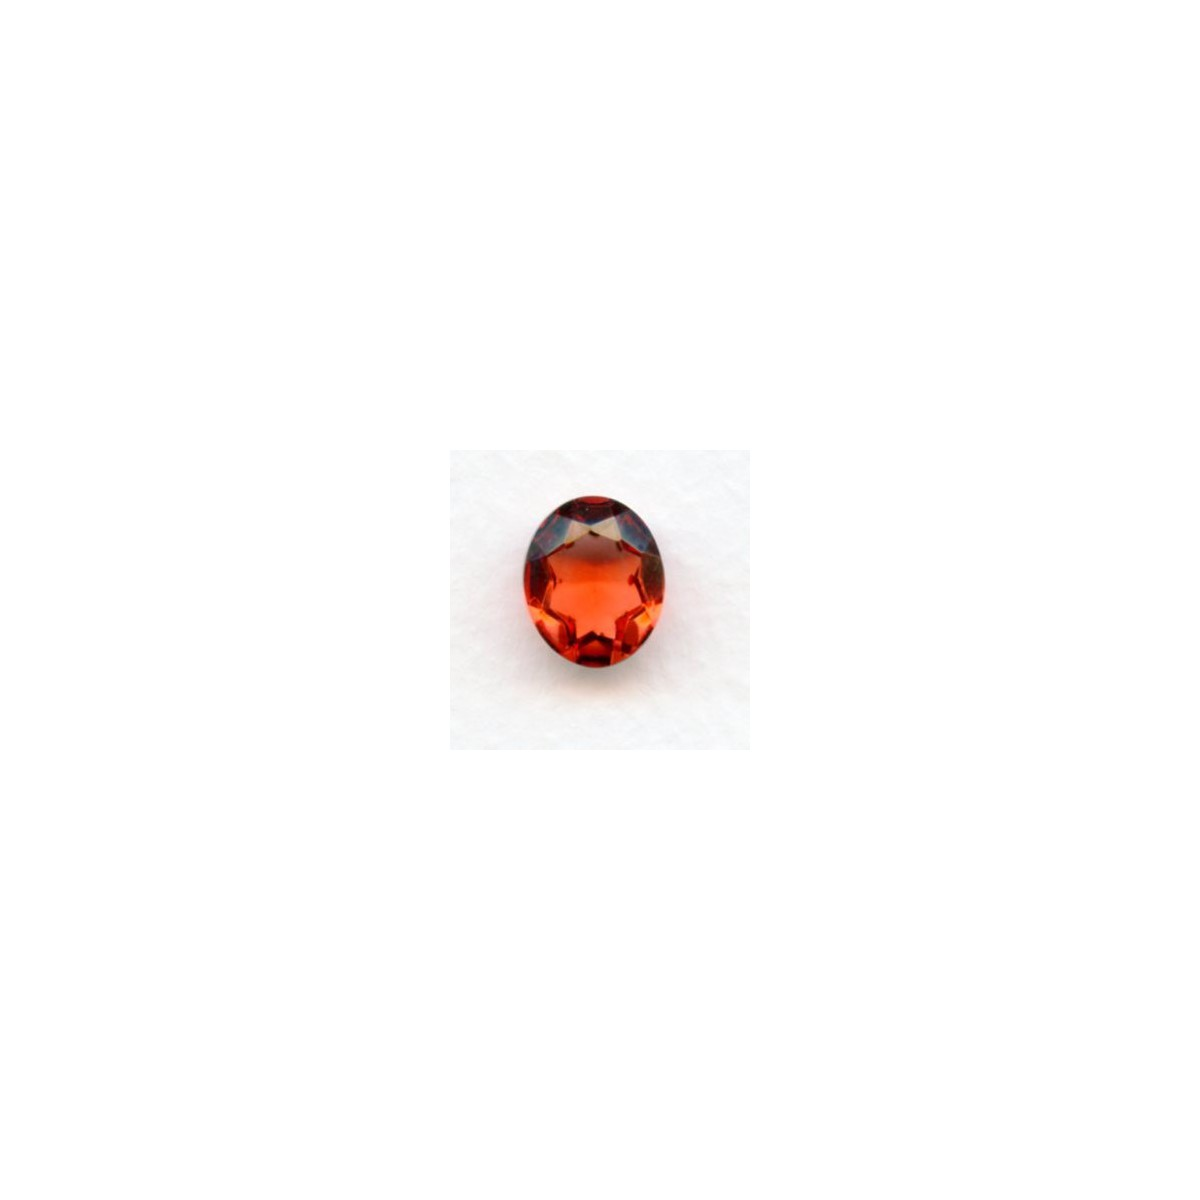 Rose Glass Oval Unfoiled Jewelry Stones 12x10mm